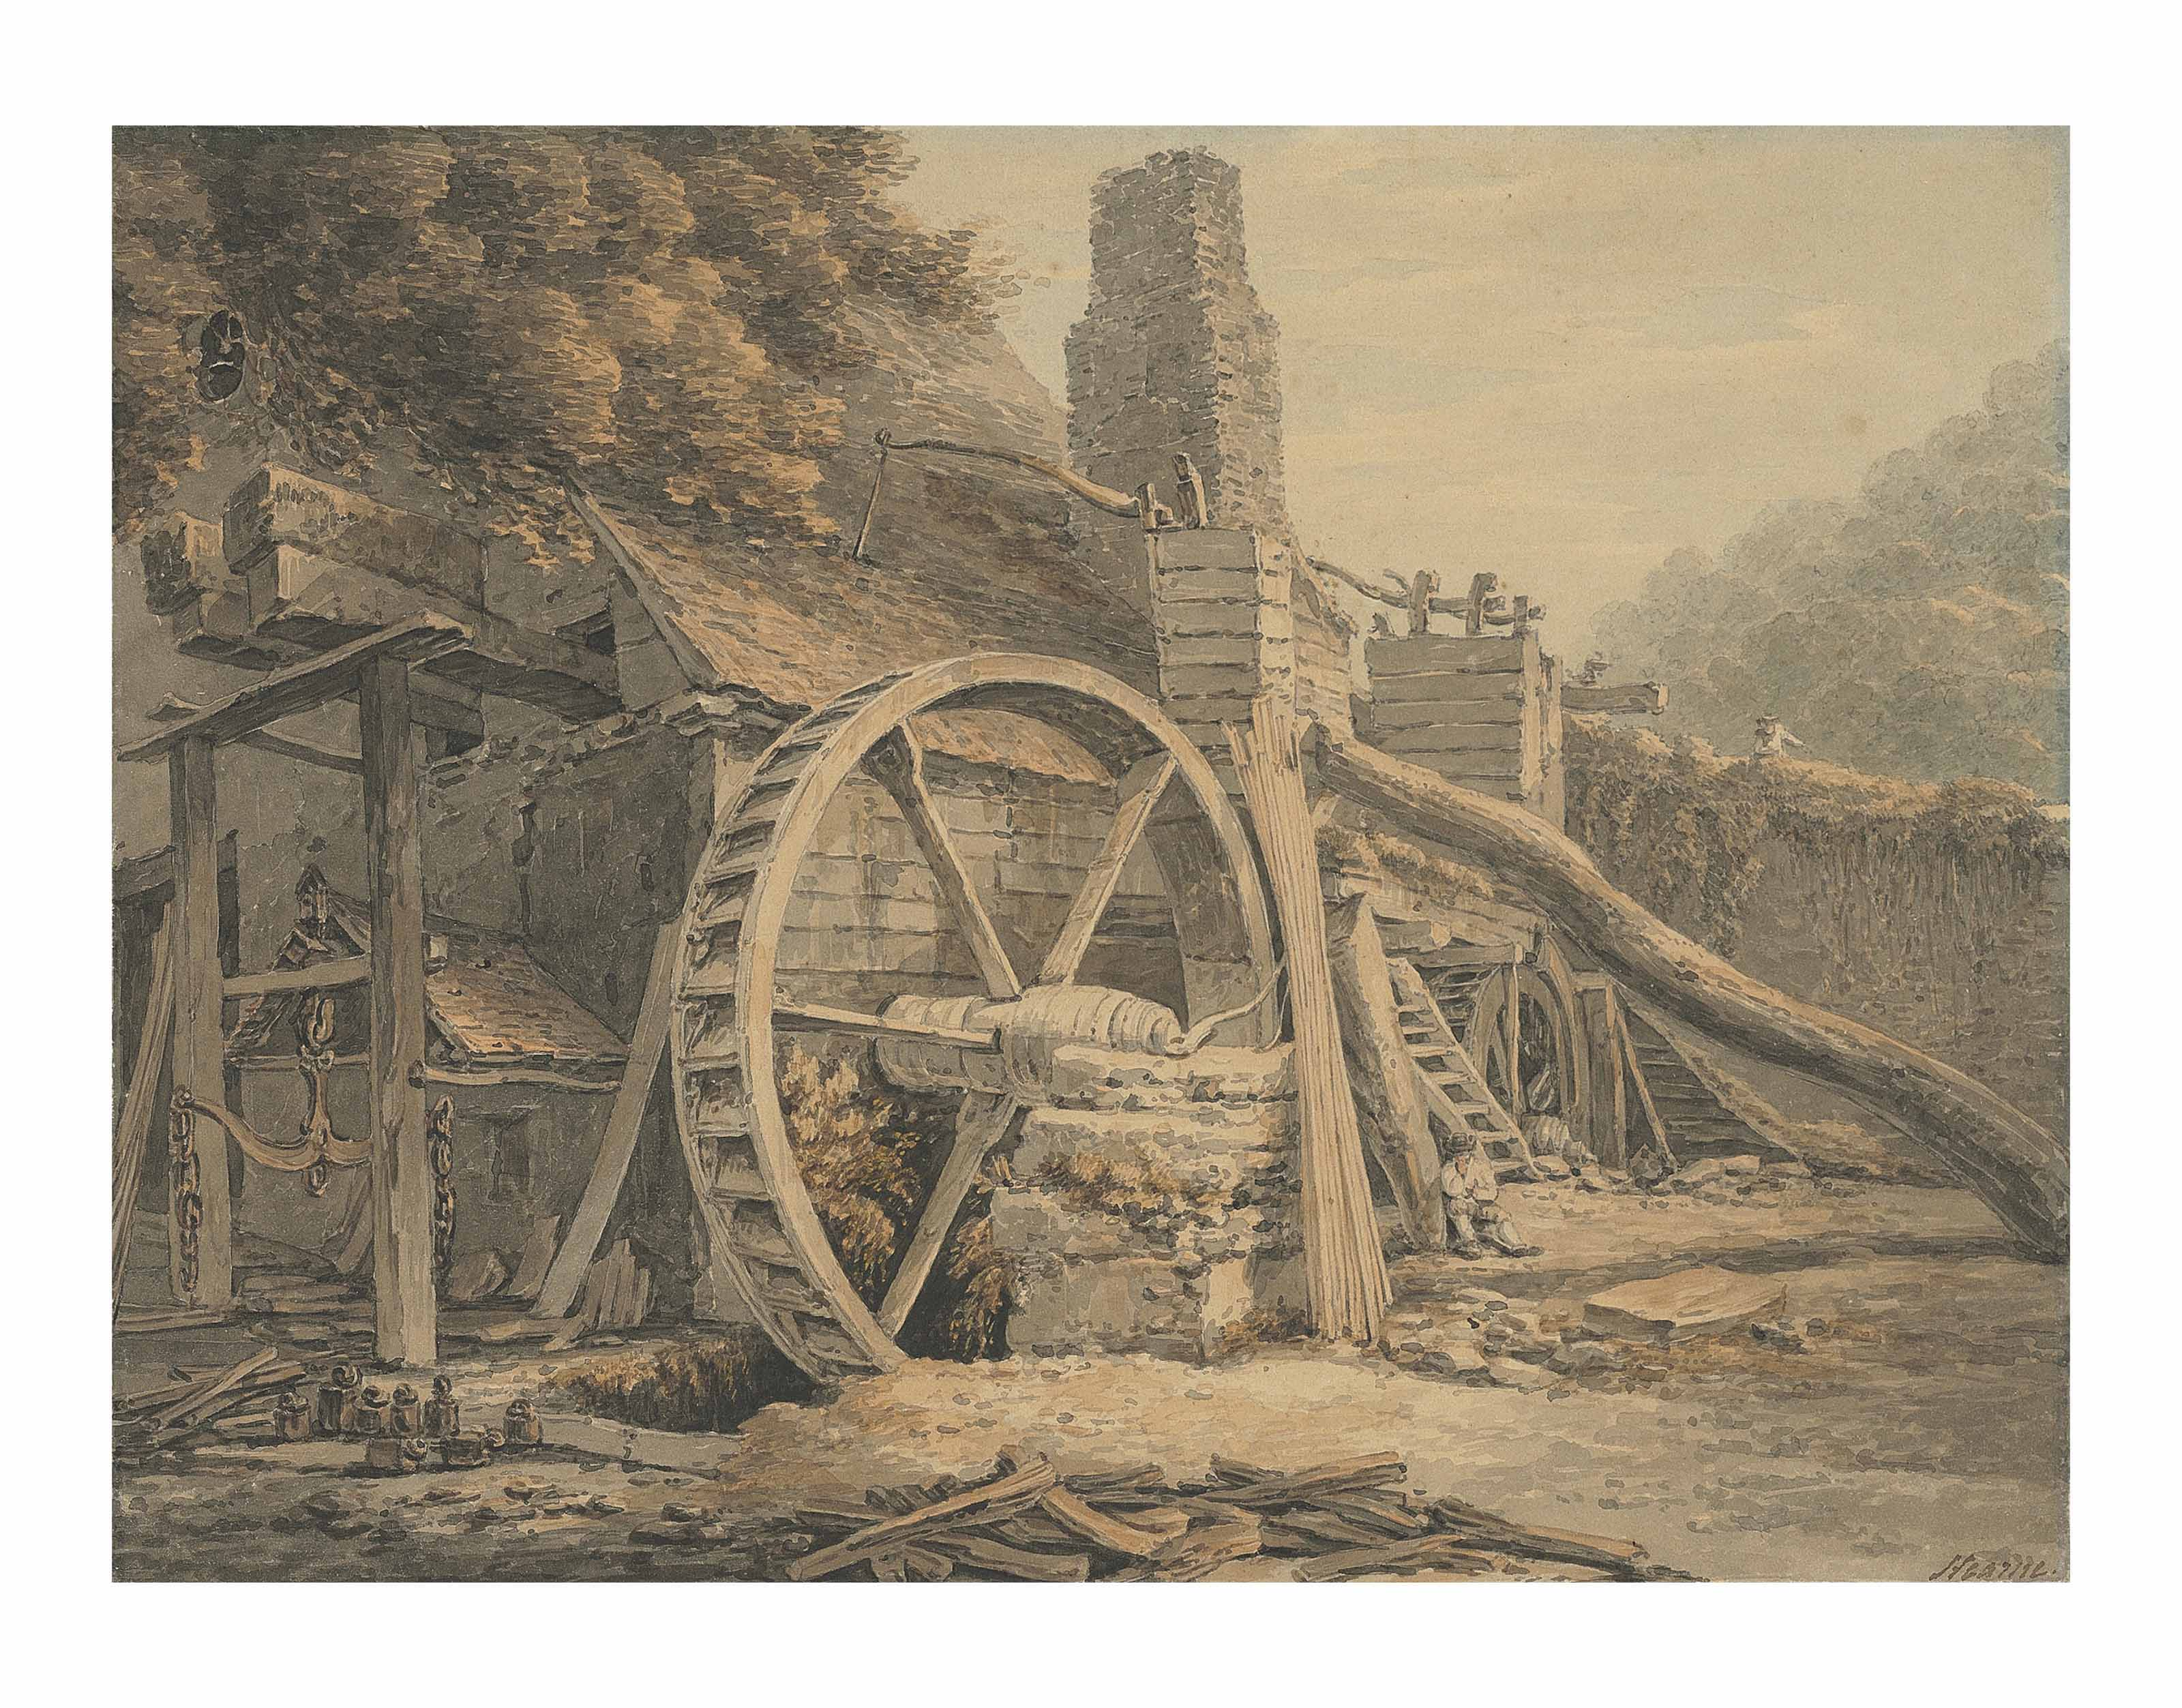 The iron forge at Tintern, Monmouthshire